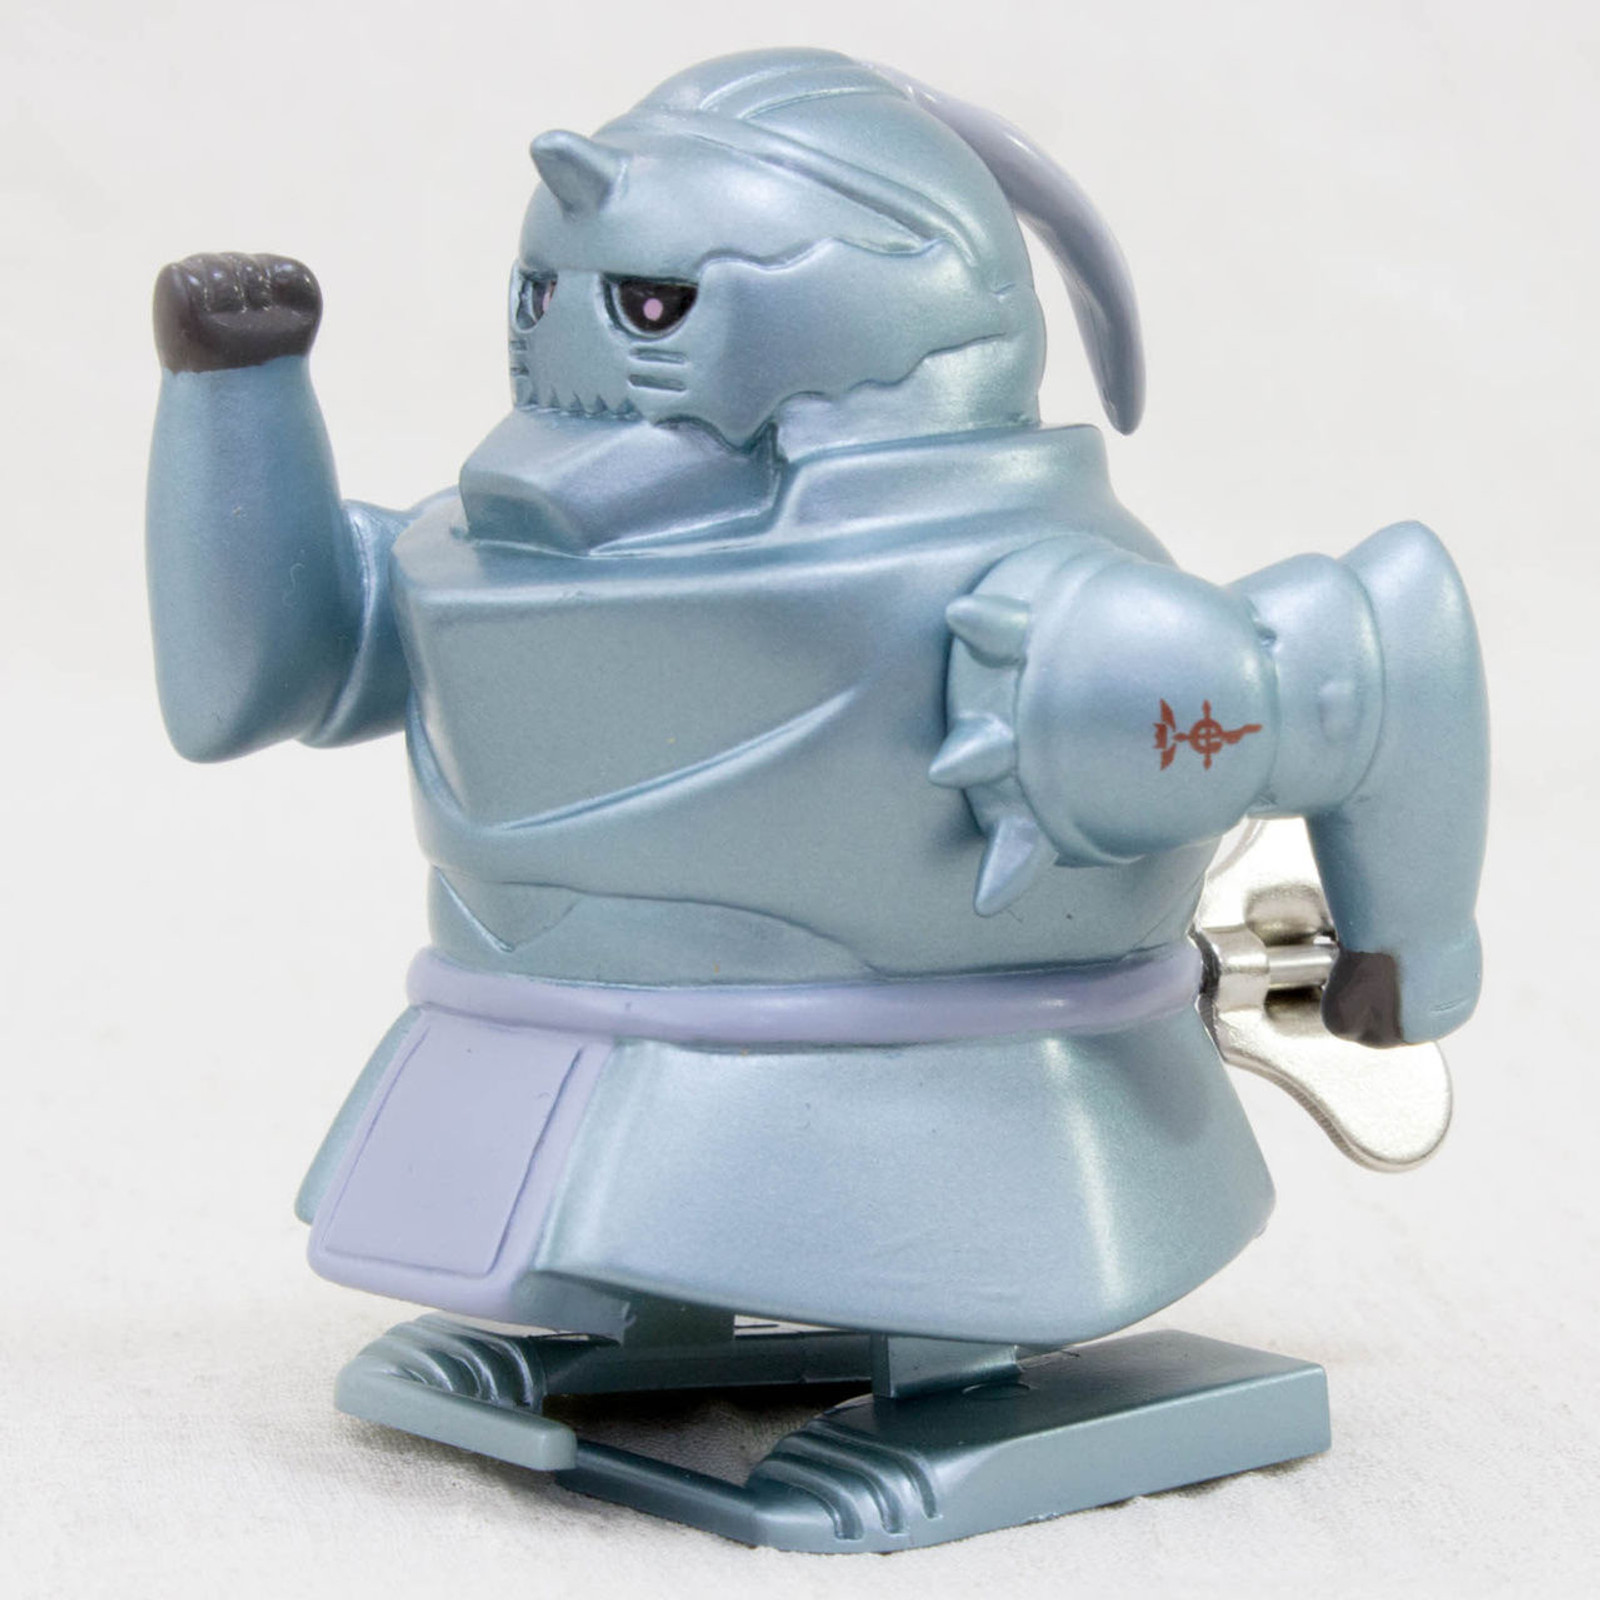 RARE! FullMetal Alchemist Alphonse Elric Wind-Up Figure JAPAN ANIME MANGA